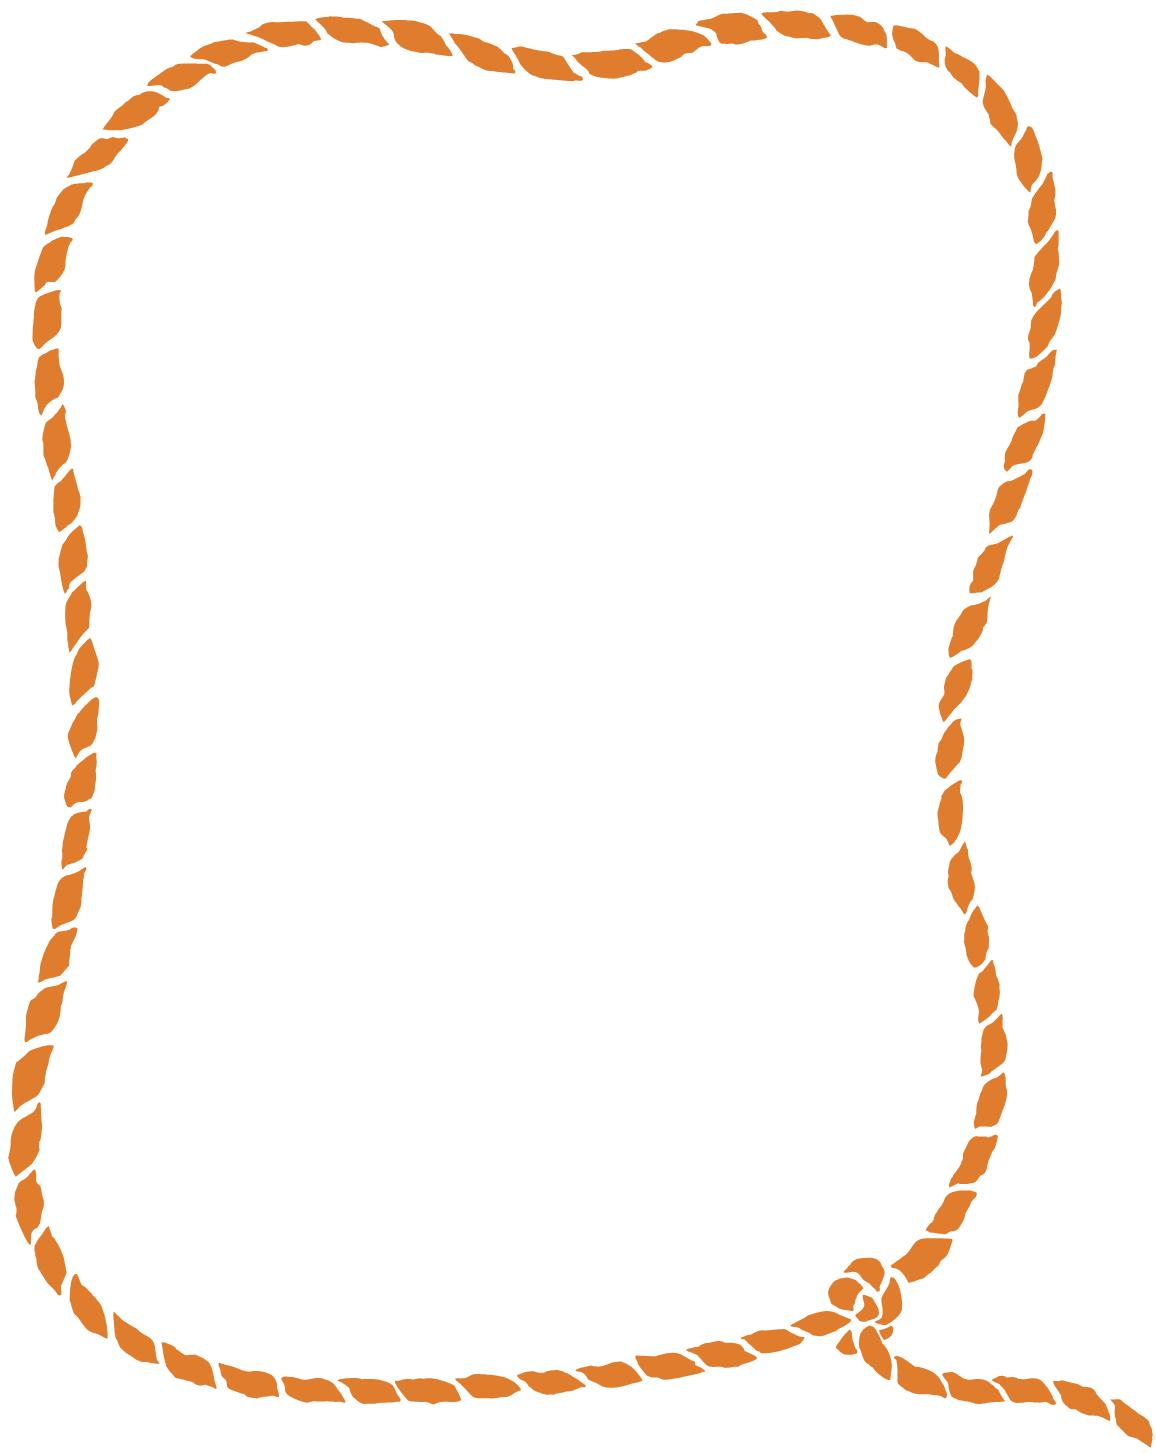 Free Rope Border Clipart, Download Free Clip Art, Free Clip.